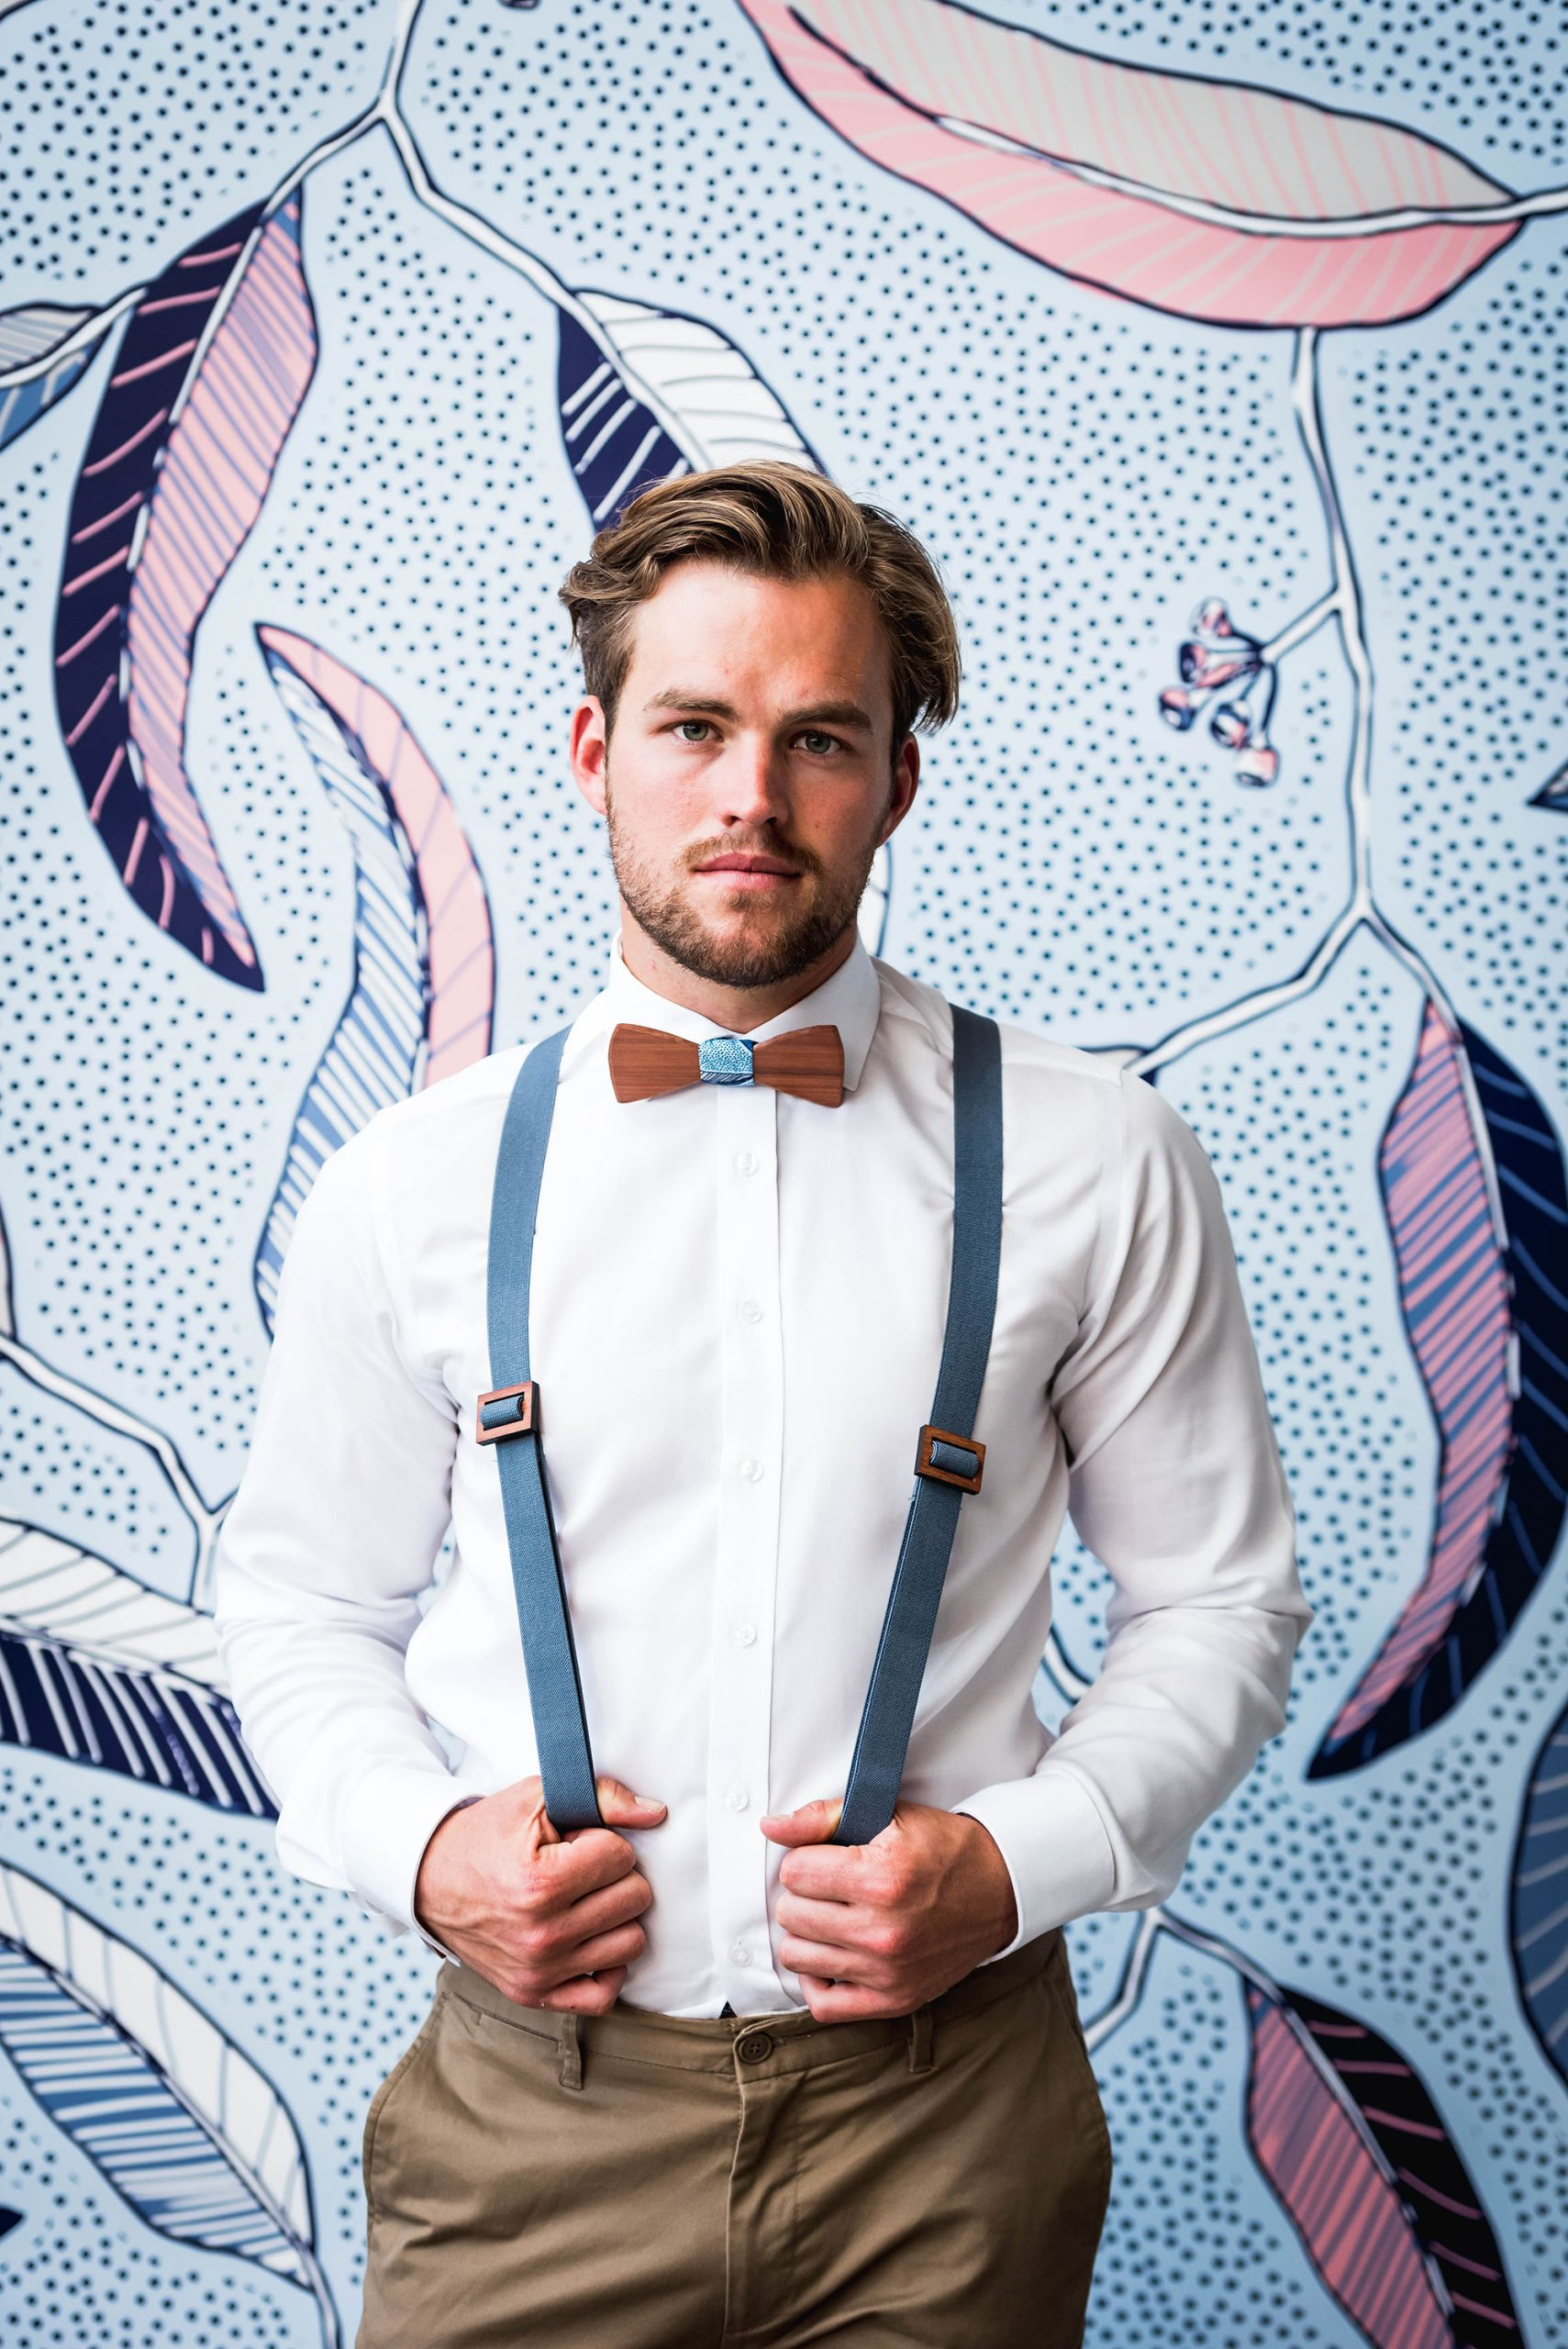 The art of wearing suspenders